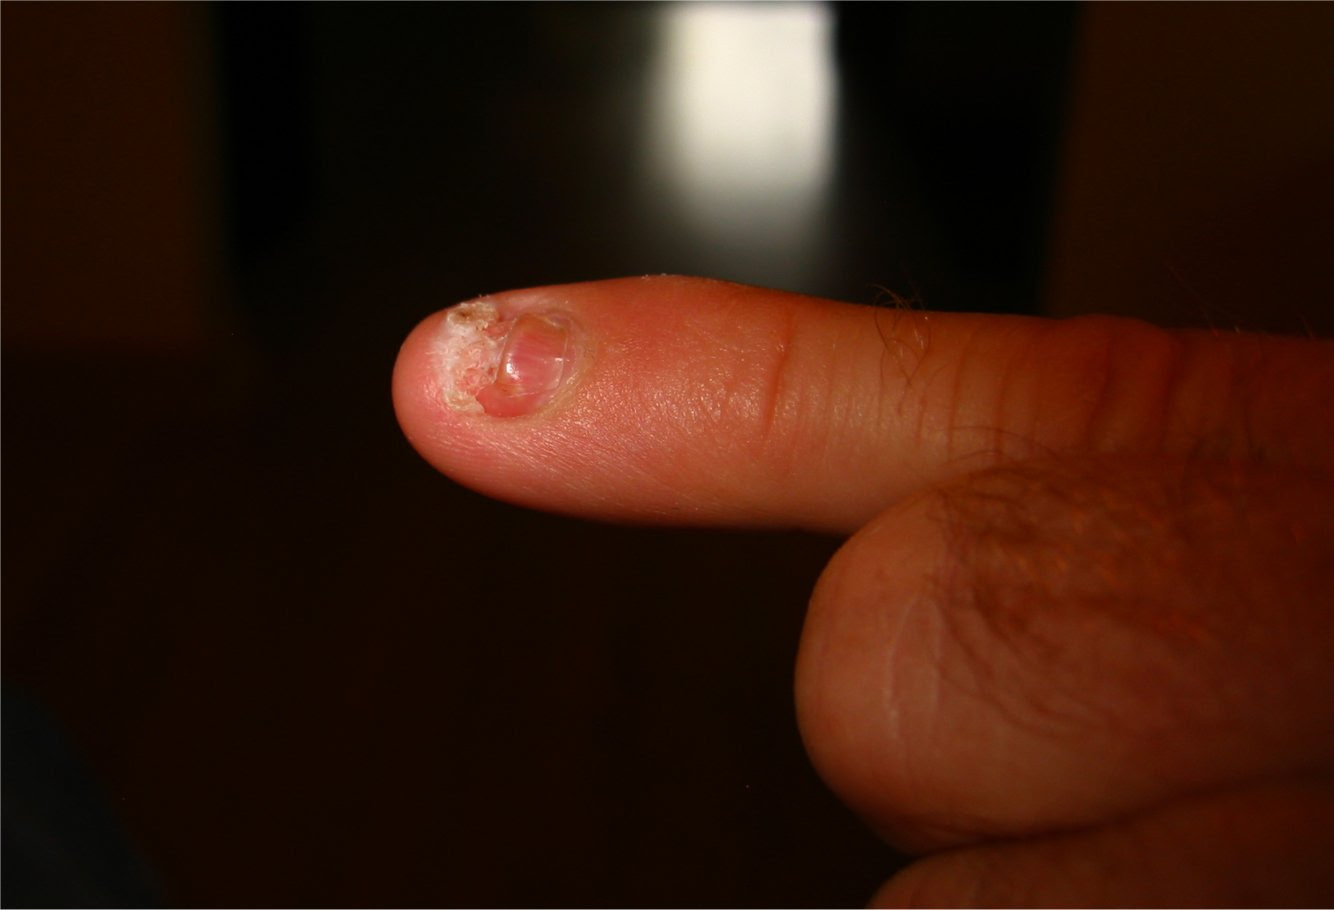 smashed finger's fingernail is growing back 20 days after coming off .... soul-amp.com